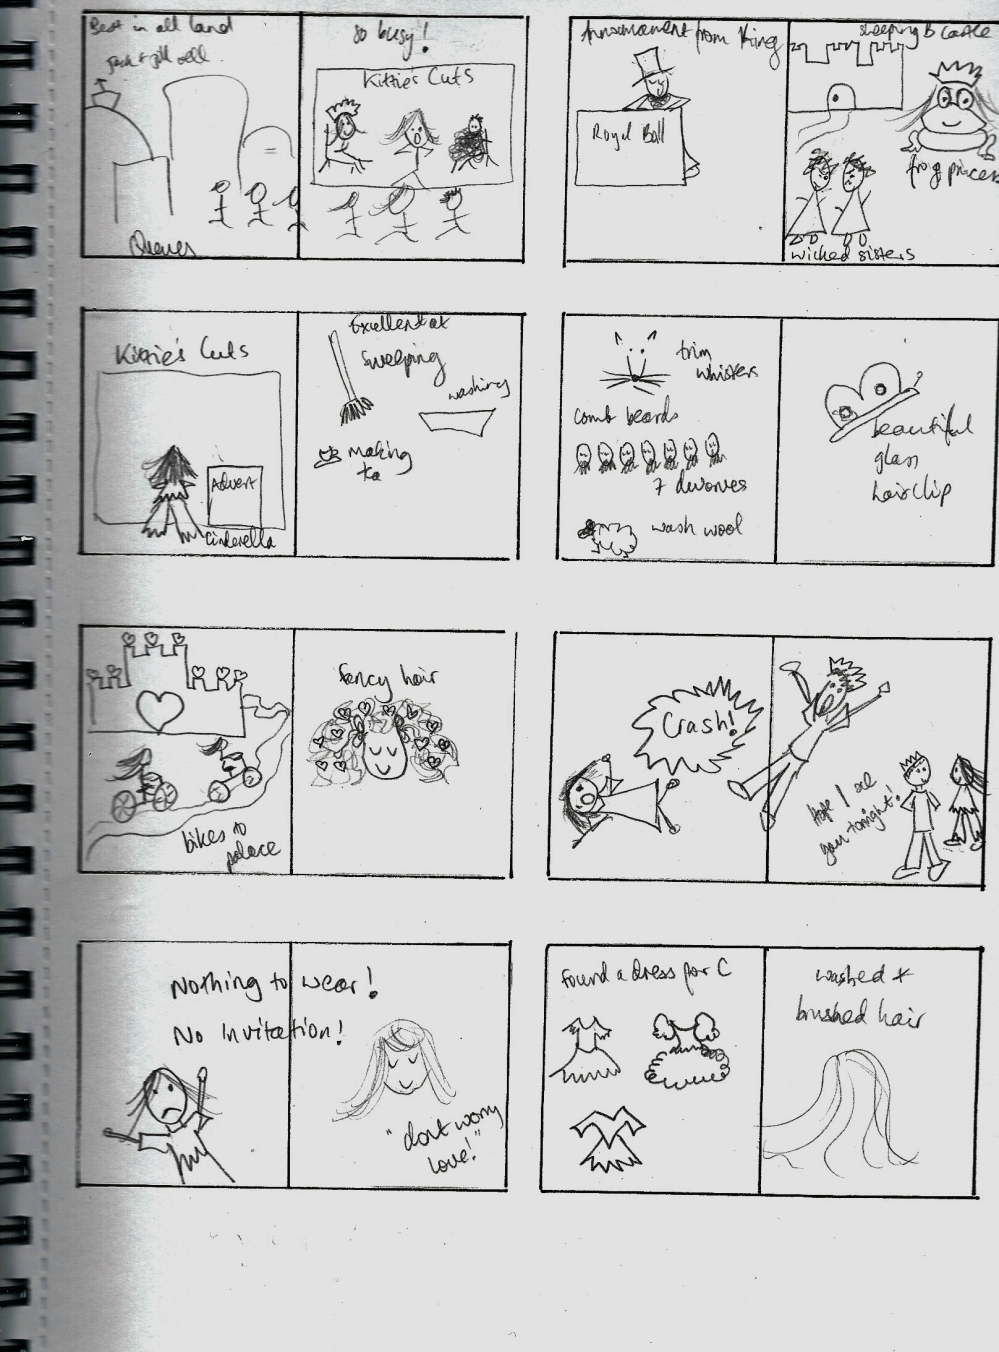 Picture 1 Thumbnails for The Fairytale Hairdresser and Cinderella